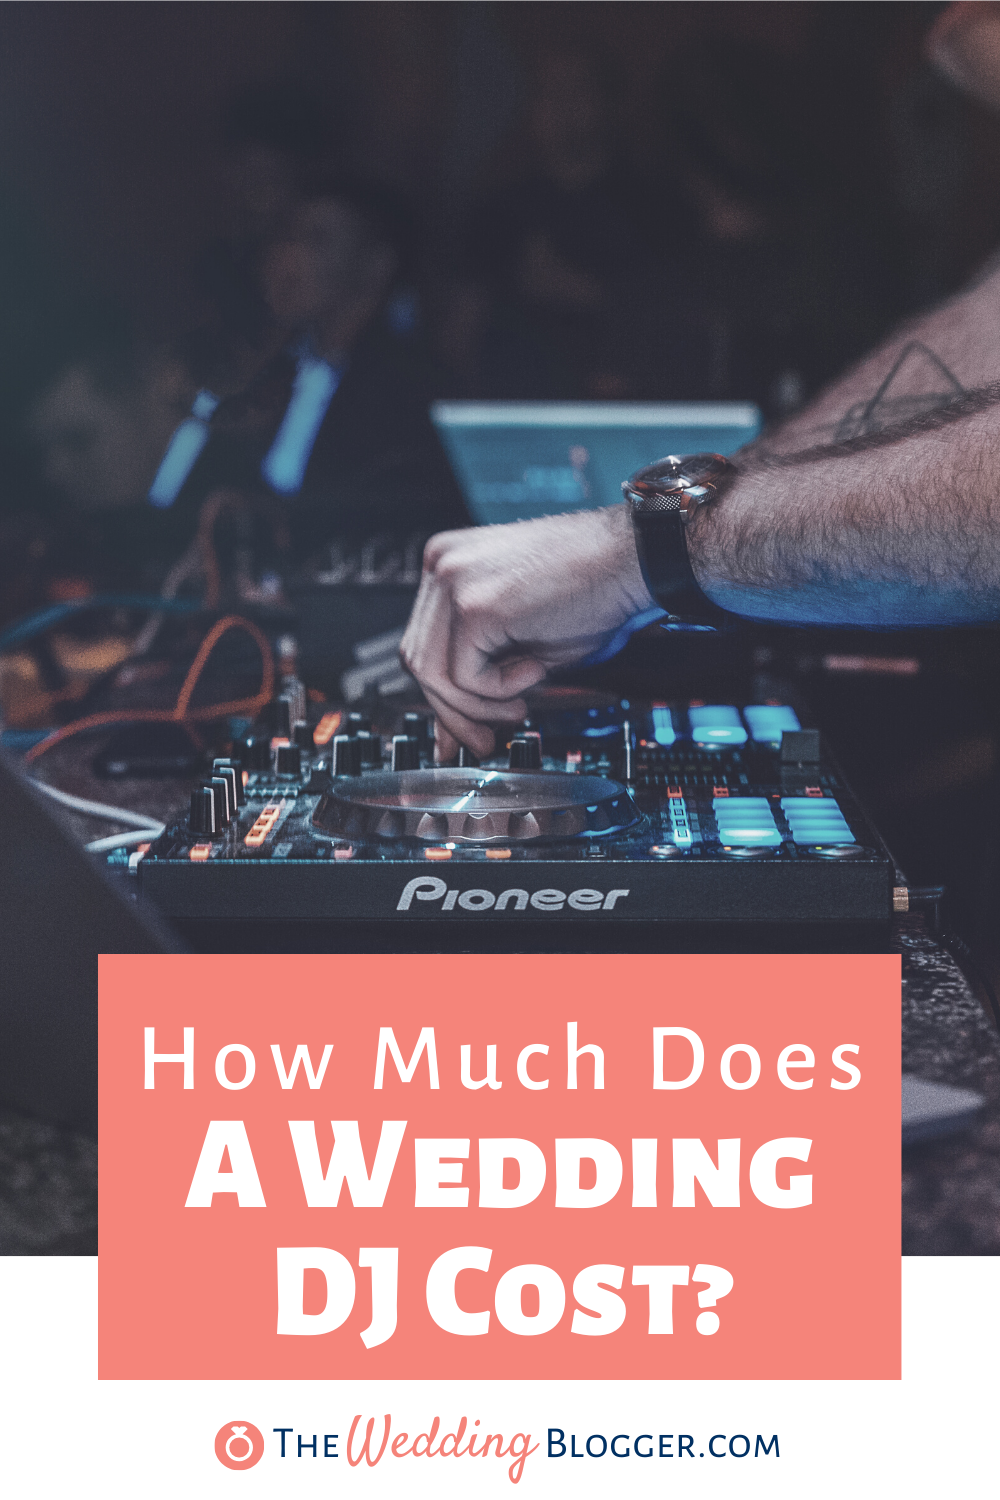 See this how much does a wedding DJ cost article to help you budget for a wedding DJ. If you want to know approximately how much a DJ will cost and what to budget be sure to check out this helpful article. Be sure to check out this awesome article that will help you determine budget for a wedding DJ! #weddingDJ #weddingreceptionmusic #receptiondj #wedingcost #weddingideas